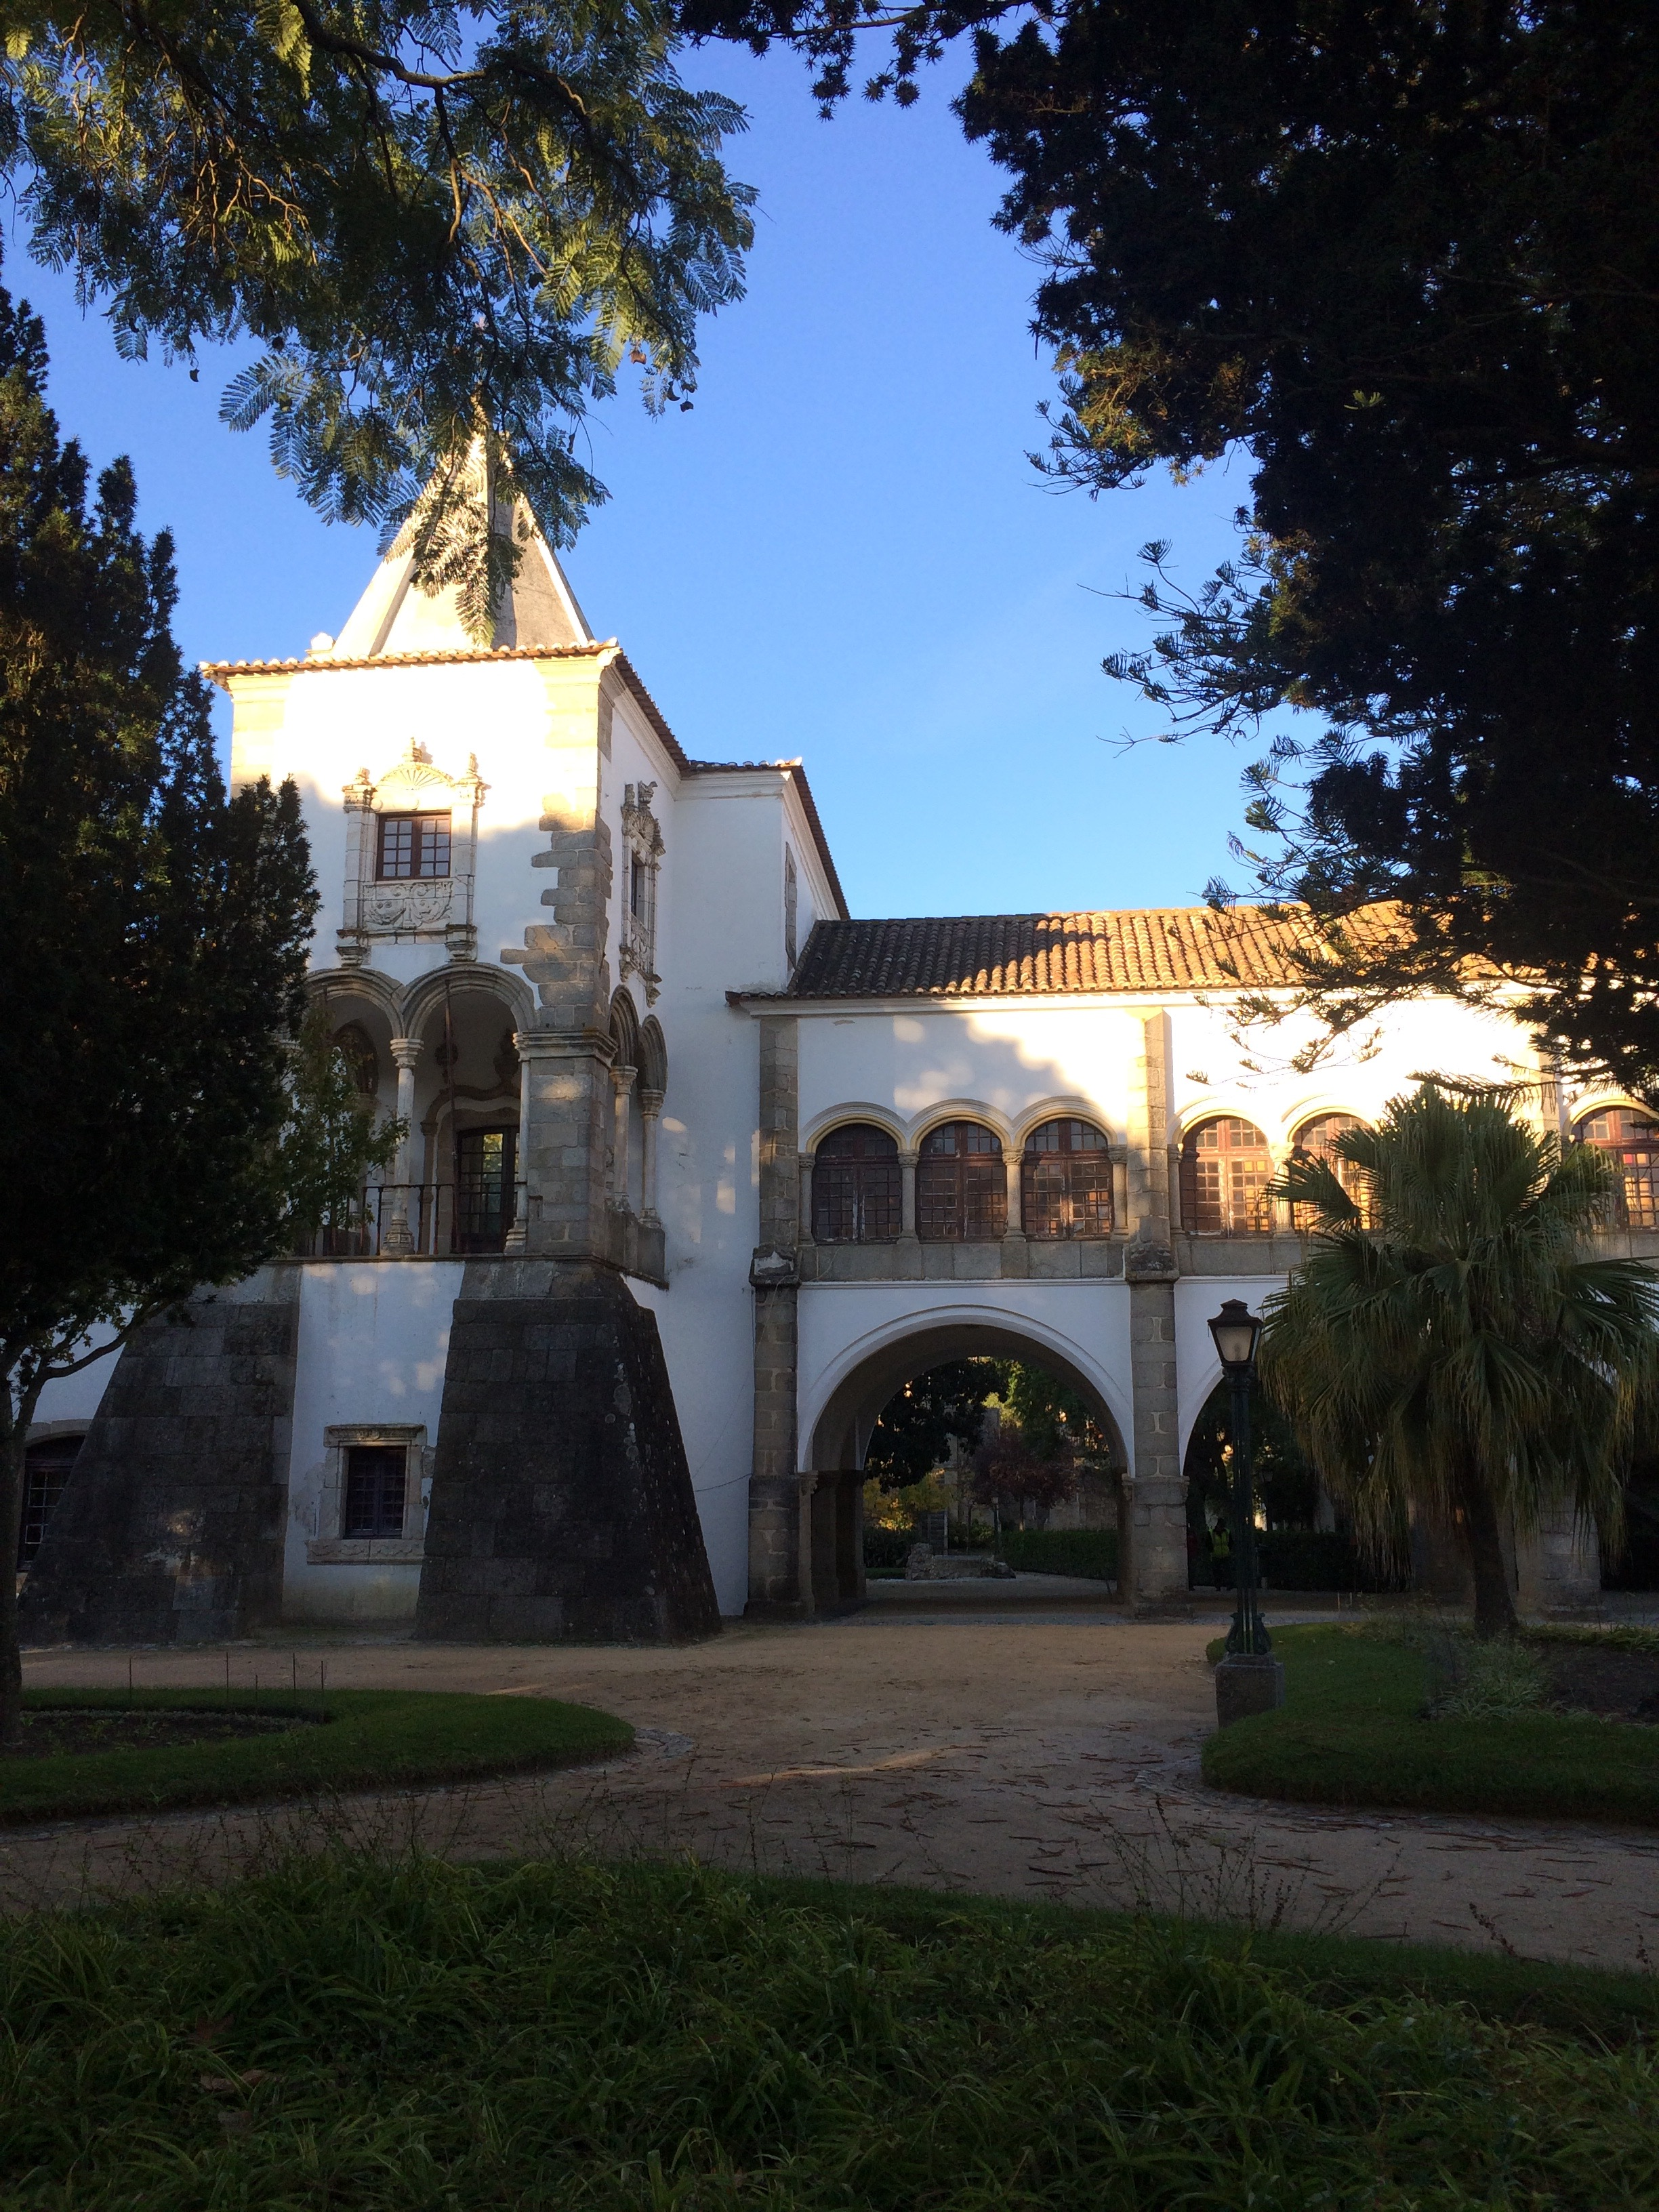 A morning walk in the public gardens at the city of Évora.